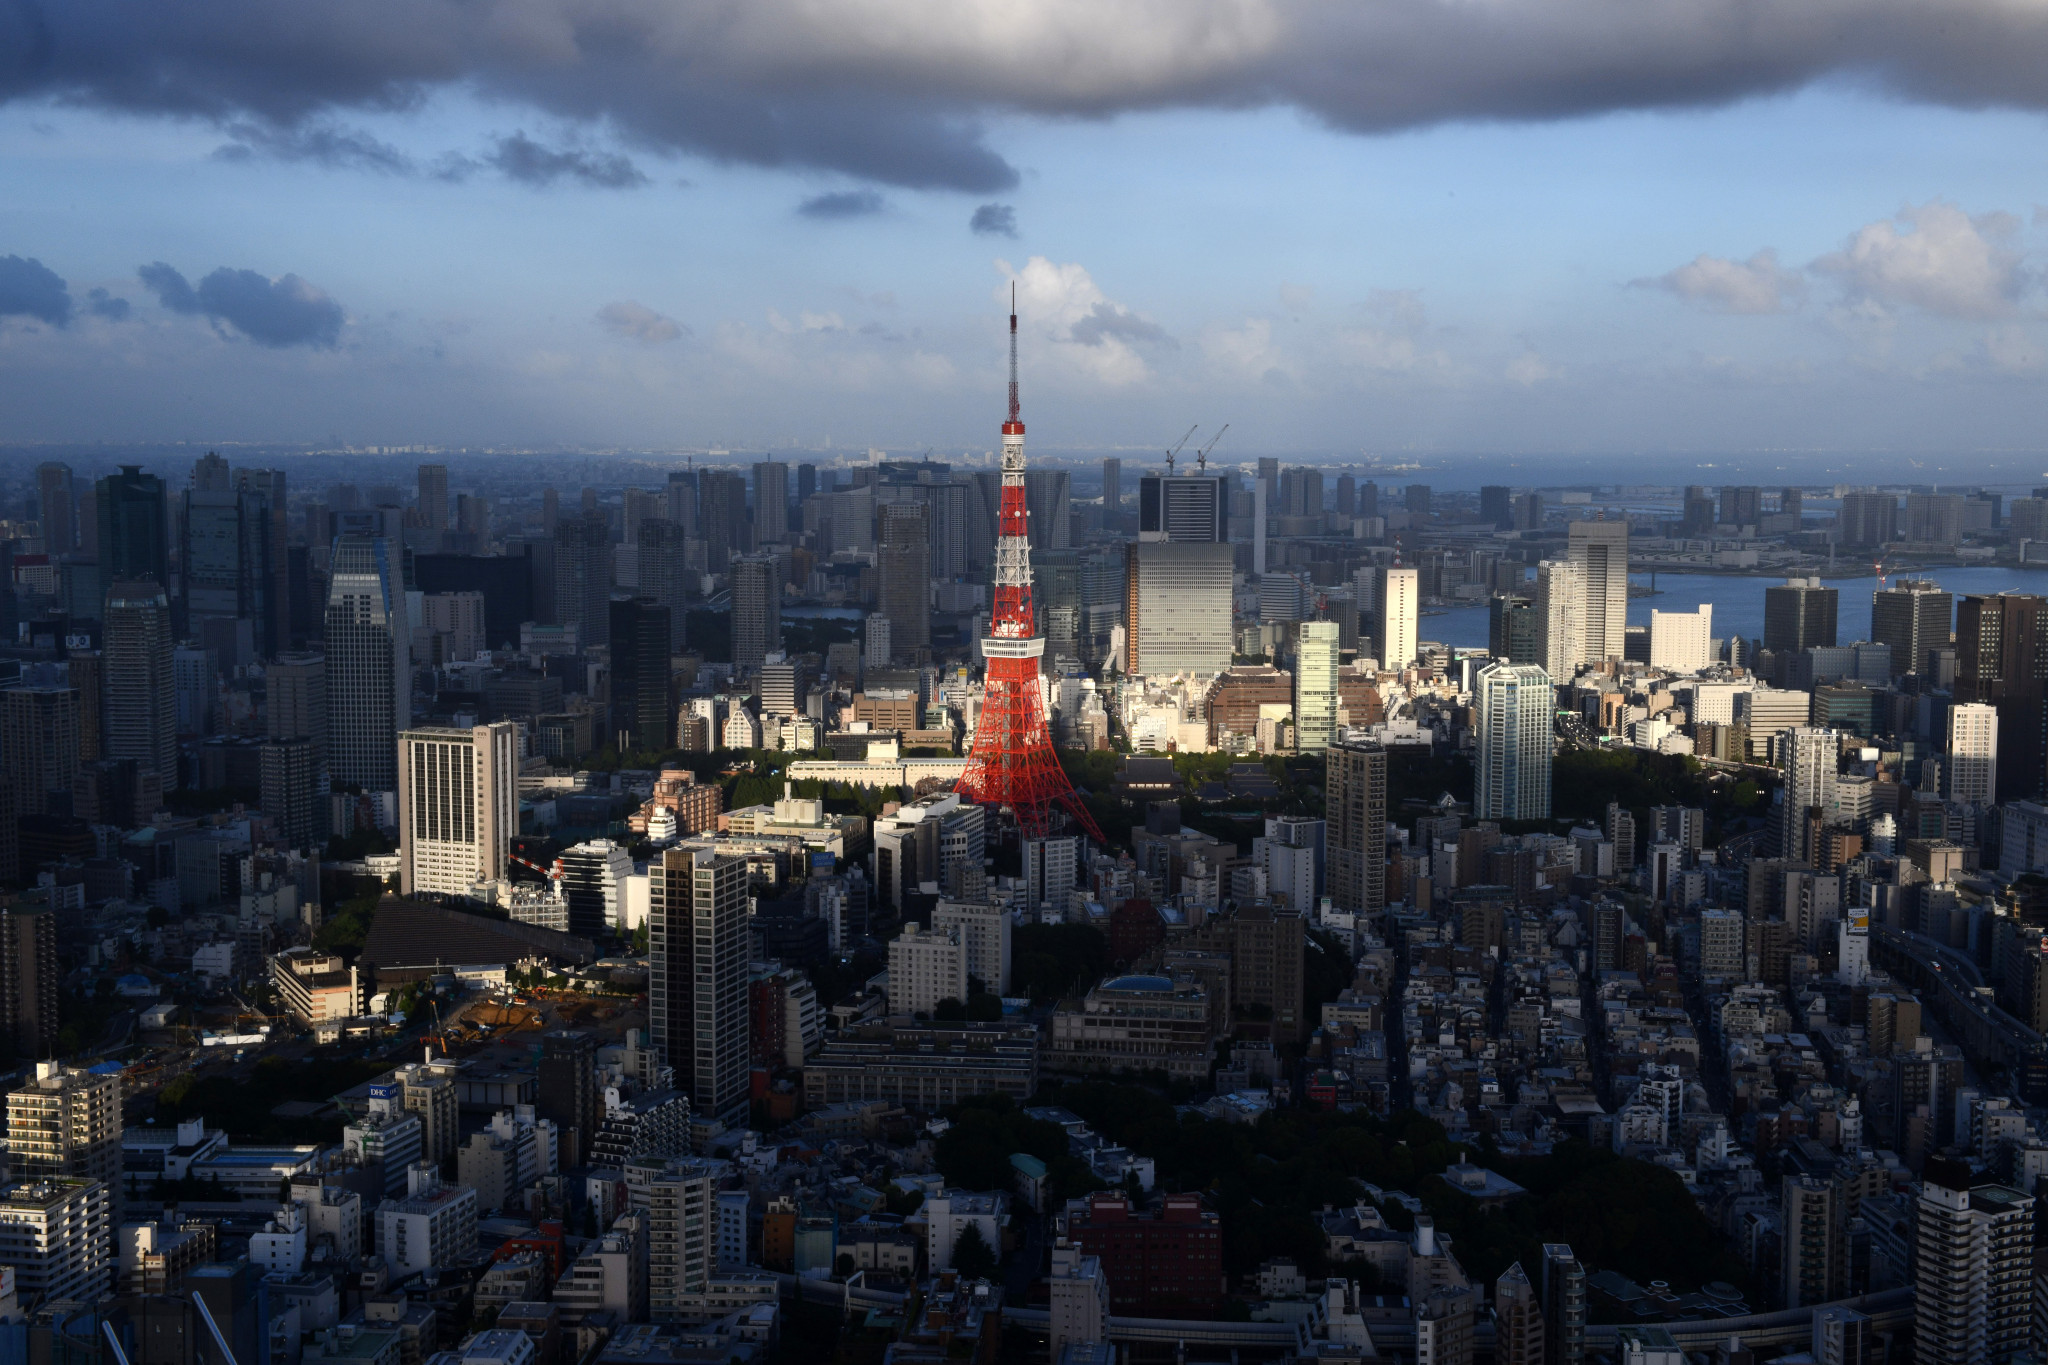 Tokyo expected to receive missile defence systems upgrade before Olympic Games